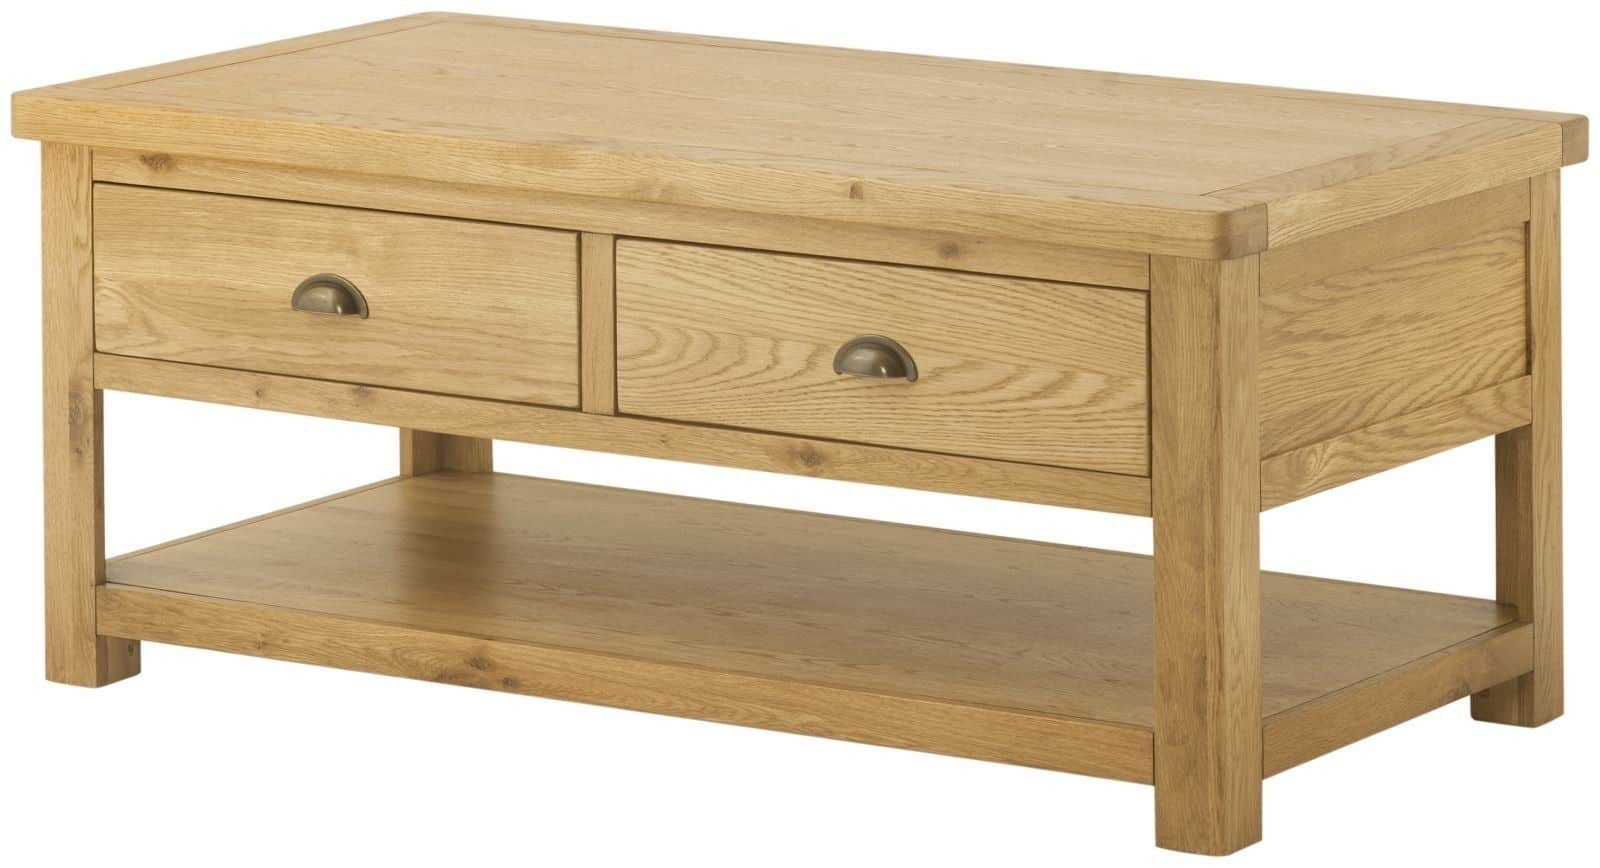 Oxford Solid Chunky Rustic Oak Large Coffee Table With Drawers And Shelf